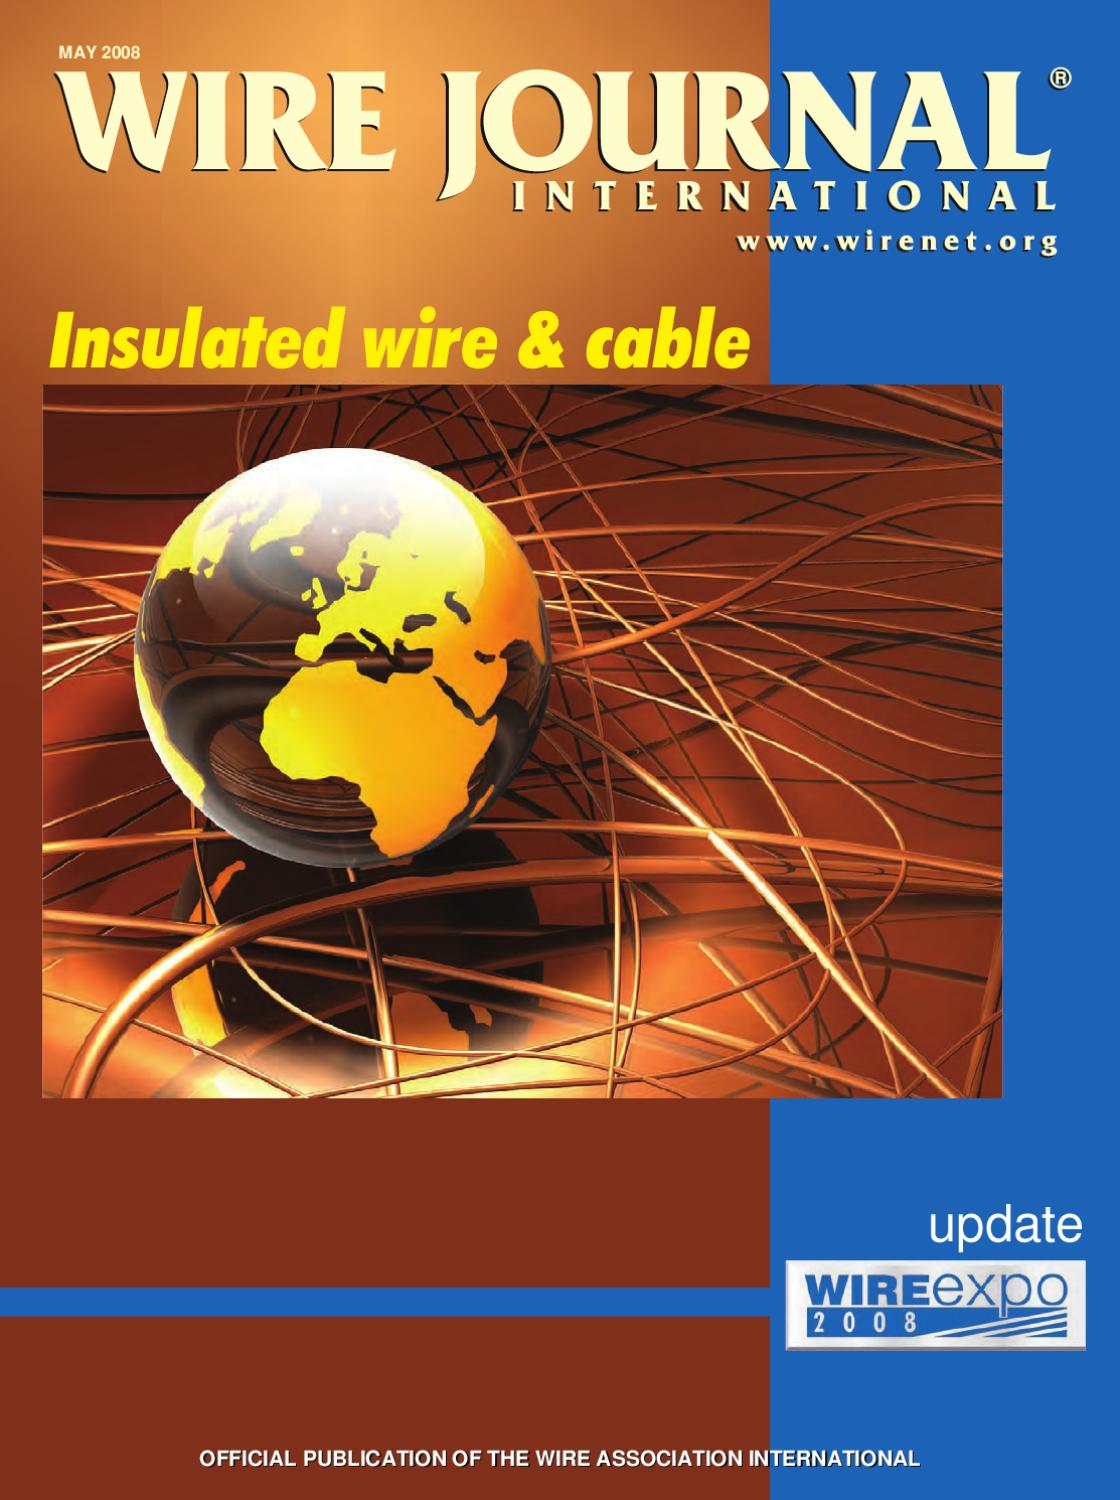 Insulated wire & cable by Wire Journal International, Inc. - issuu